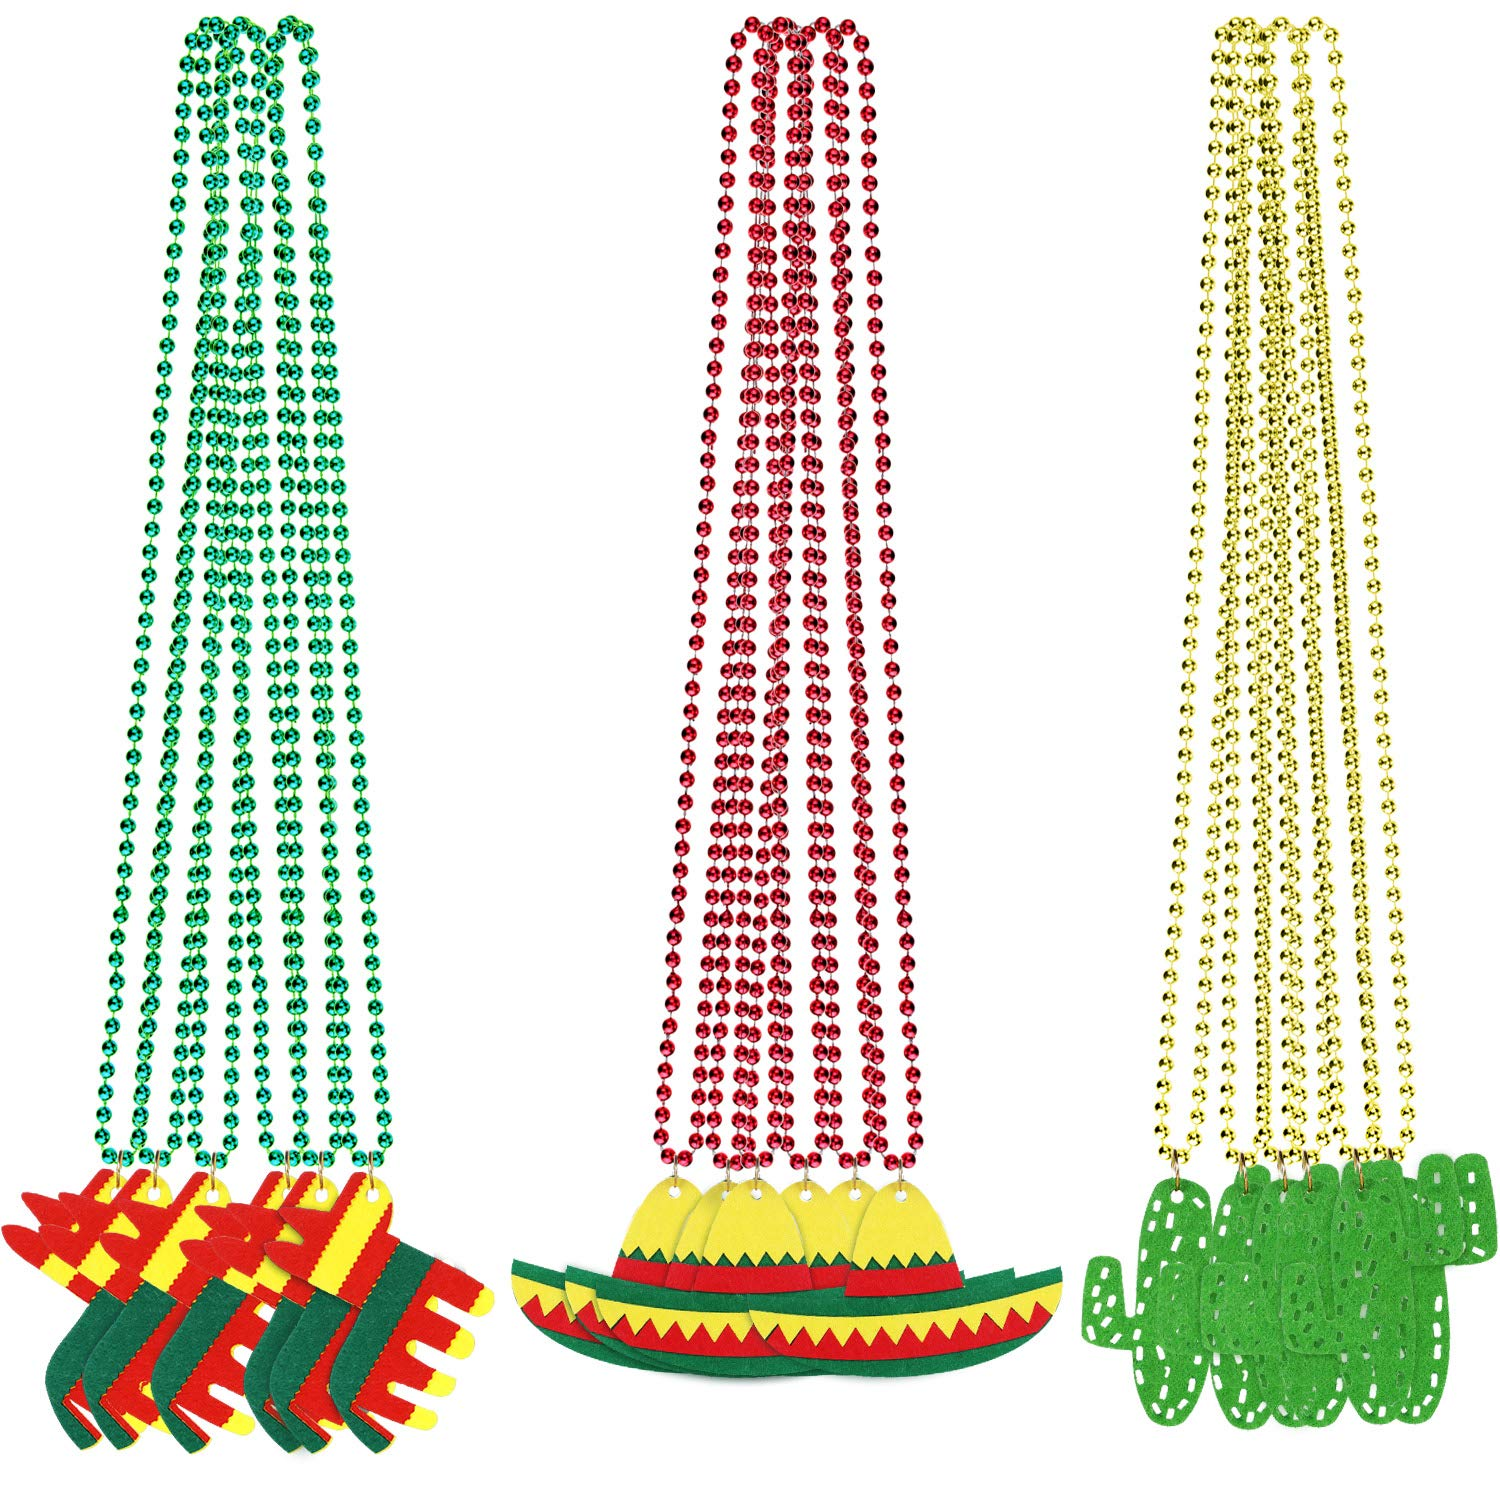 18 Pieces Fiesta Beaded Necklaces Cactus Sombrero Hat Shaped Necklaces for Mexican Party Decorations Birthday Fiesta Party Supplies, Red, Gold, Green by Boao